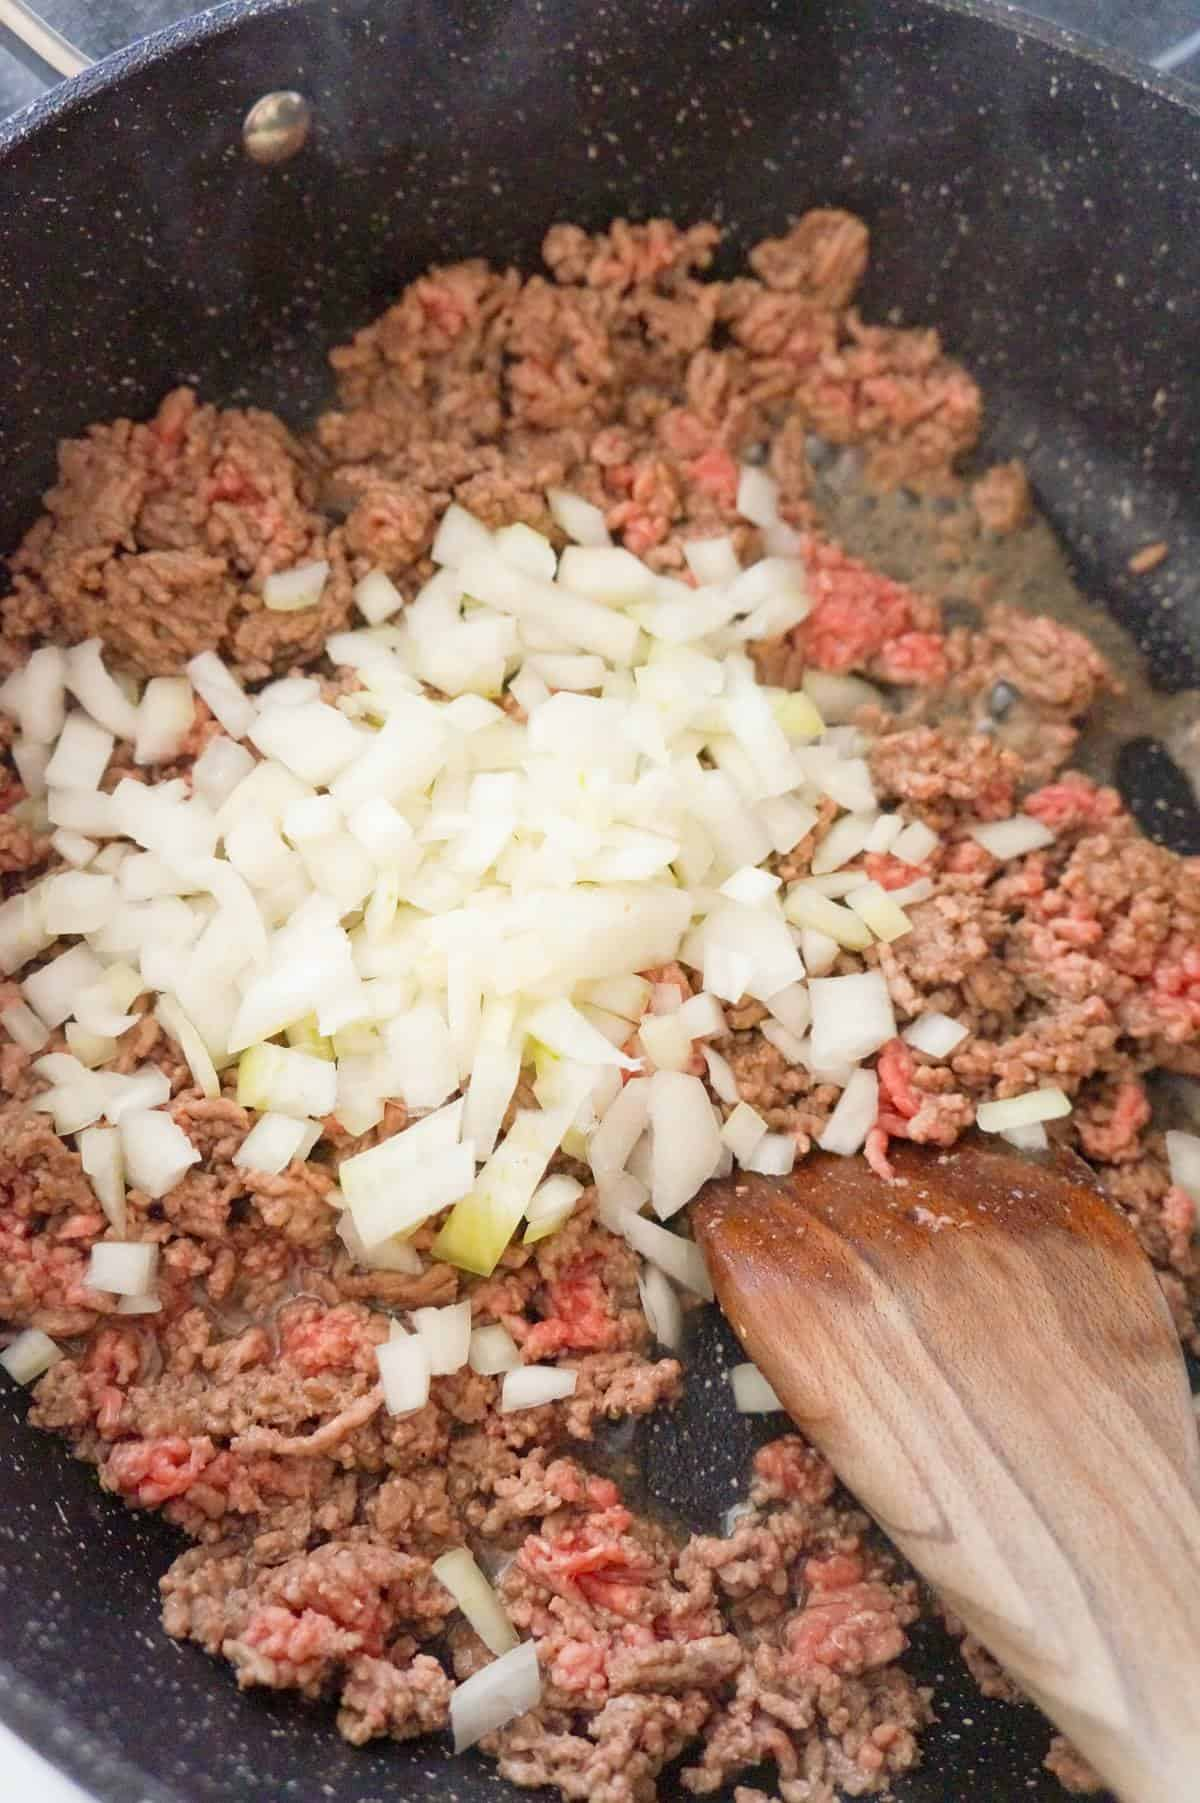 diced onions on top of ground beef in a saute pan